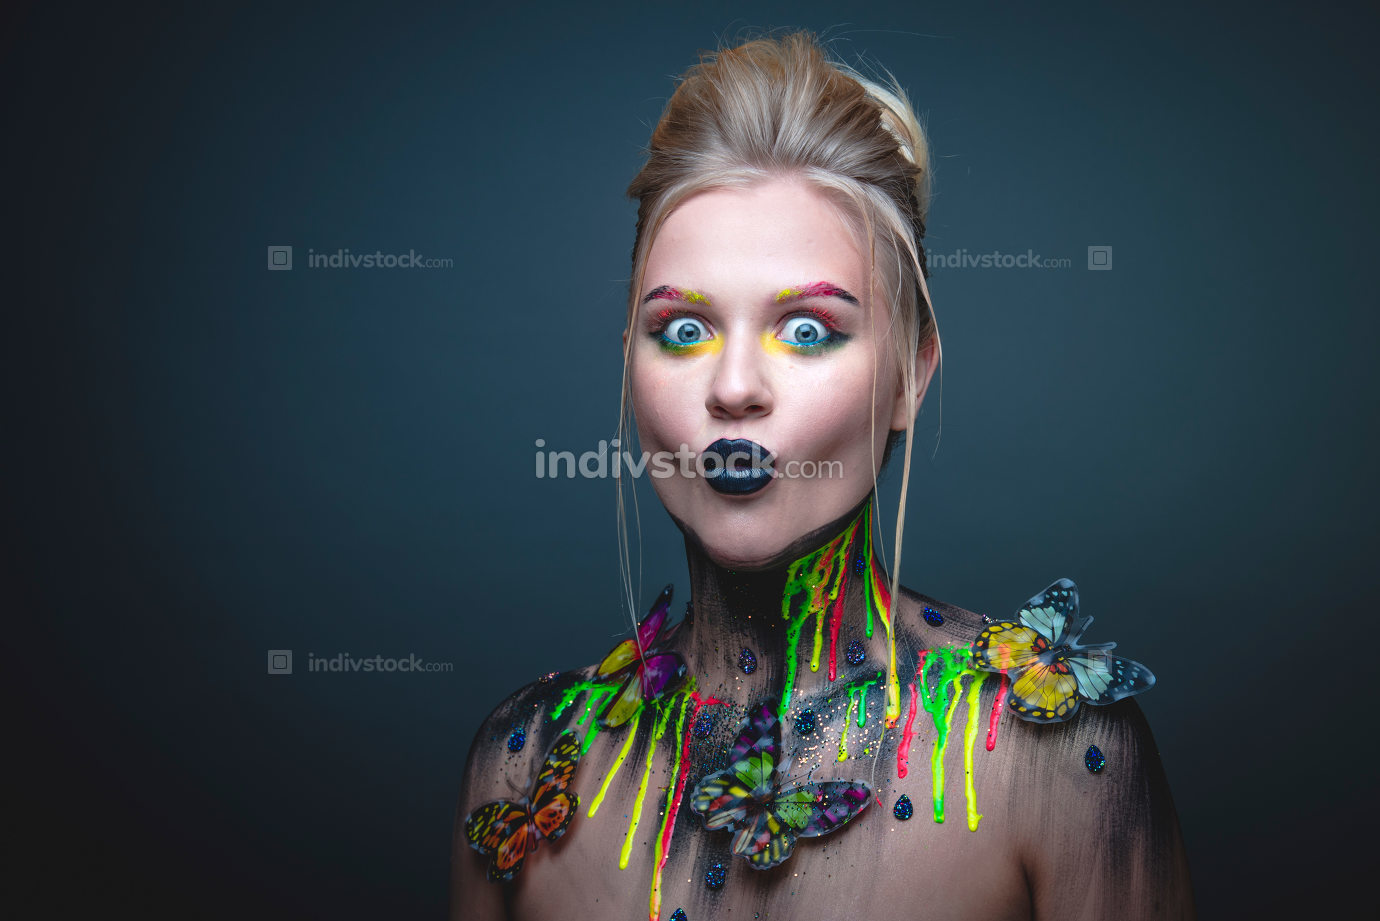 Young girl with creative makeup with butterflies